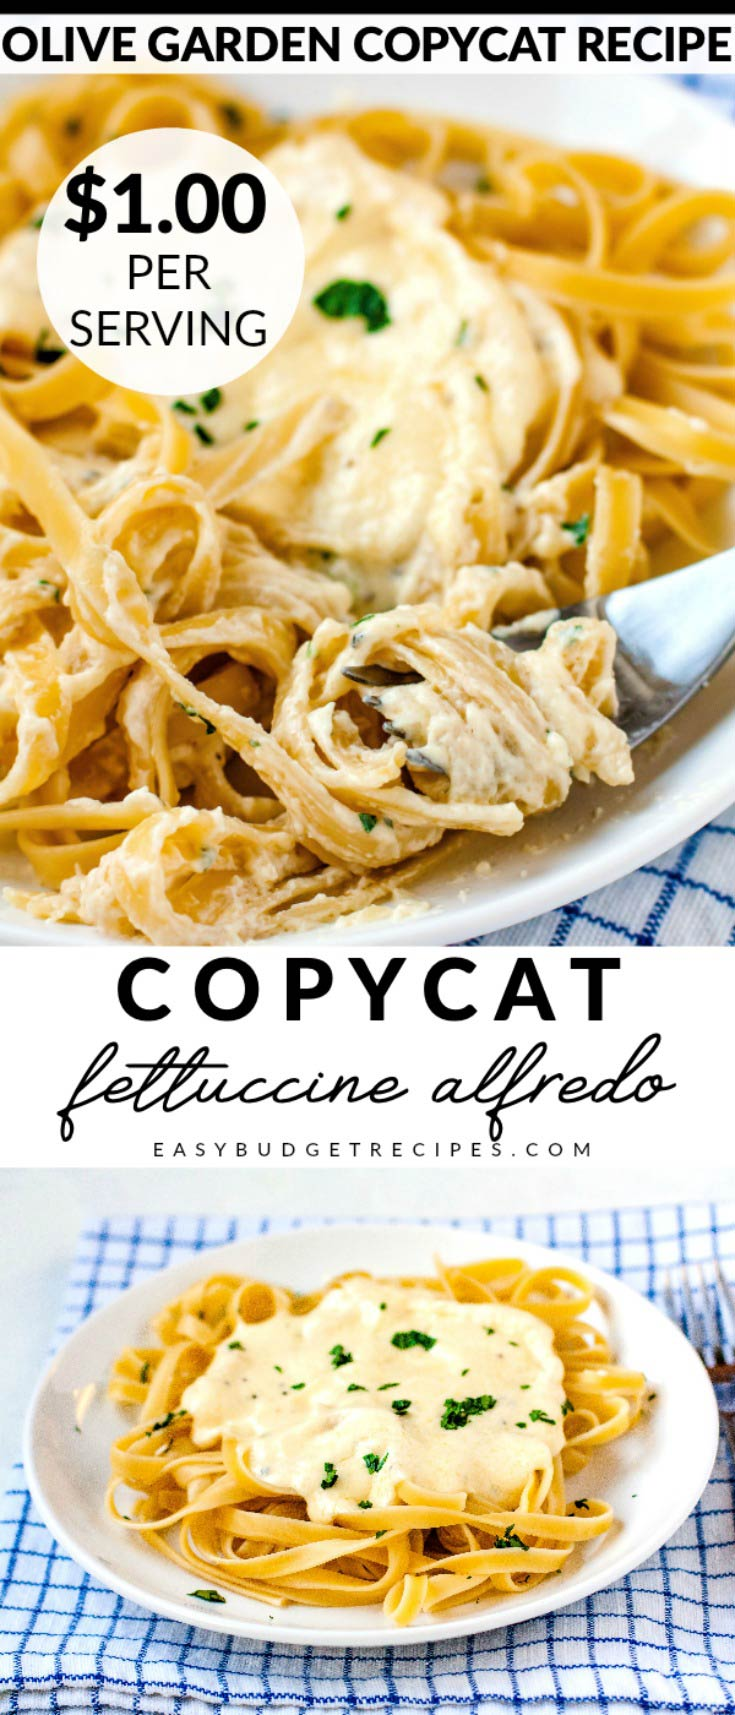 This Copycat Olive Garden Fettuccine Alfredo recipe takes just 30 minutes to make and is incredibly delicious. It serves 6 and costs $6.00 to make. That's just $1 per serving! via @easybudgetrecipes